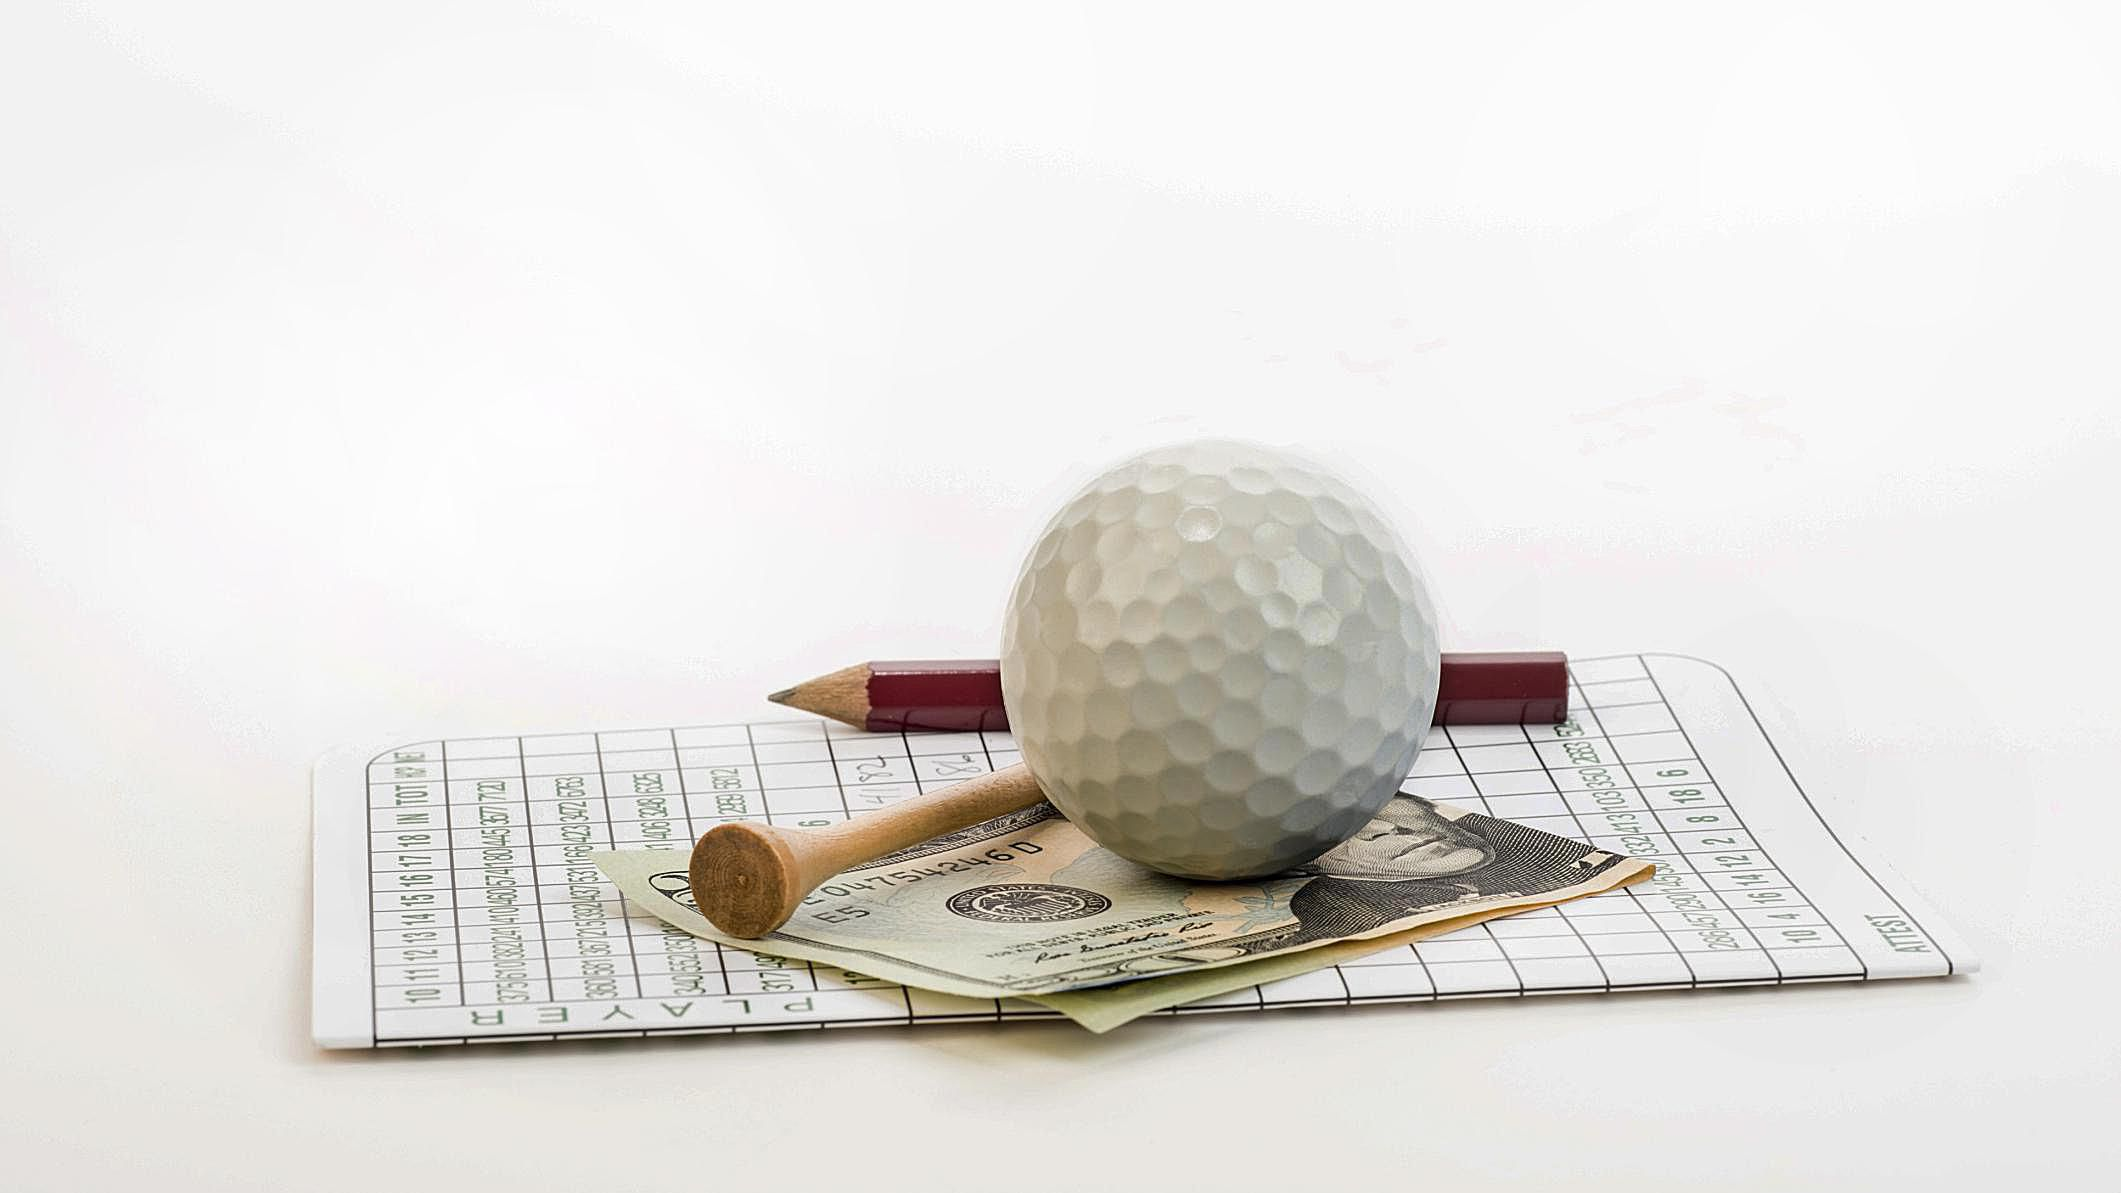 Group golf betting games nassau tron evolution bitcoins